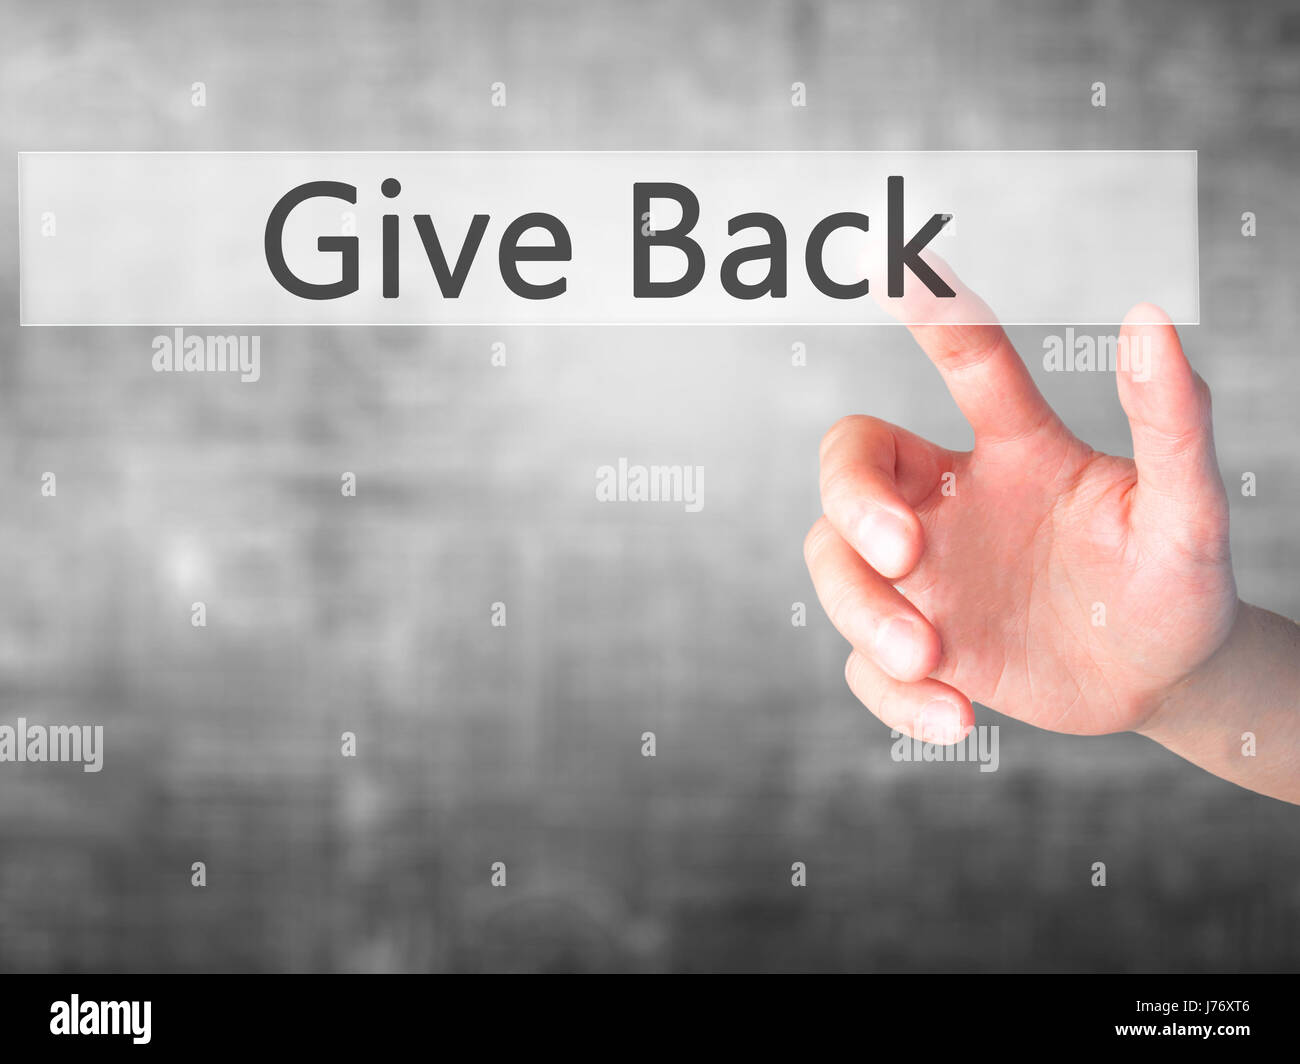 Give Back - Hand pressing a button on blurred background concept . Business, technology, internet concept. Stock - Stock Image